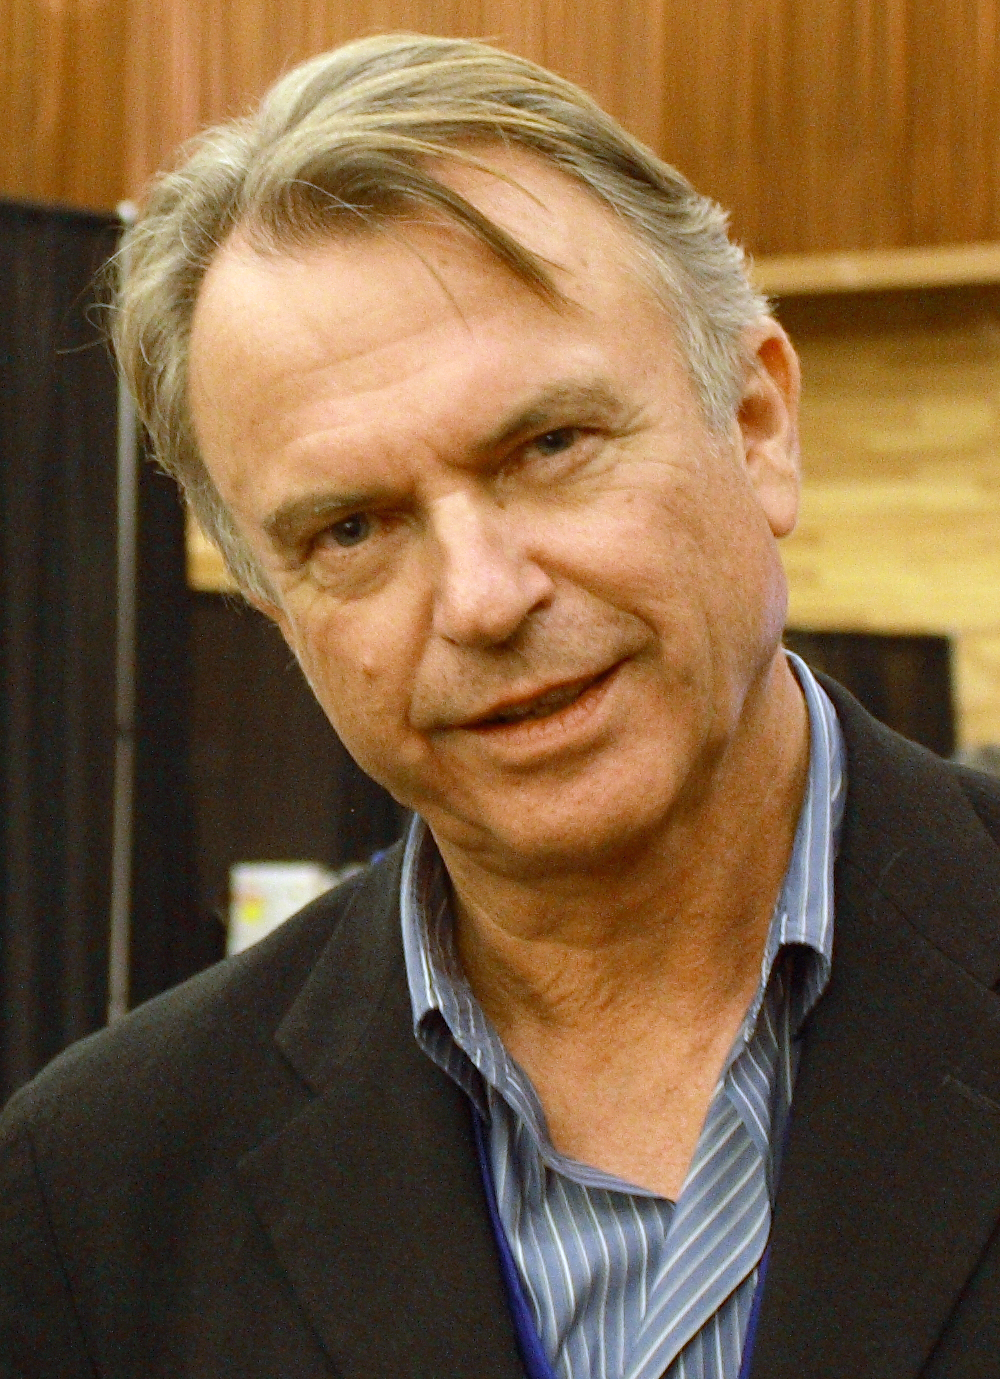 The 71-year old son of father Dermot Neill and mother Priscilla Neill Sam Neill in 2018 photo. Sam Neill earned a  million dollar salary - leaving the net worth at 12 million in 2018